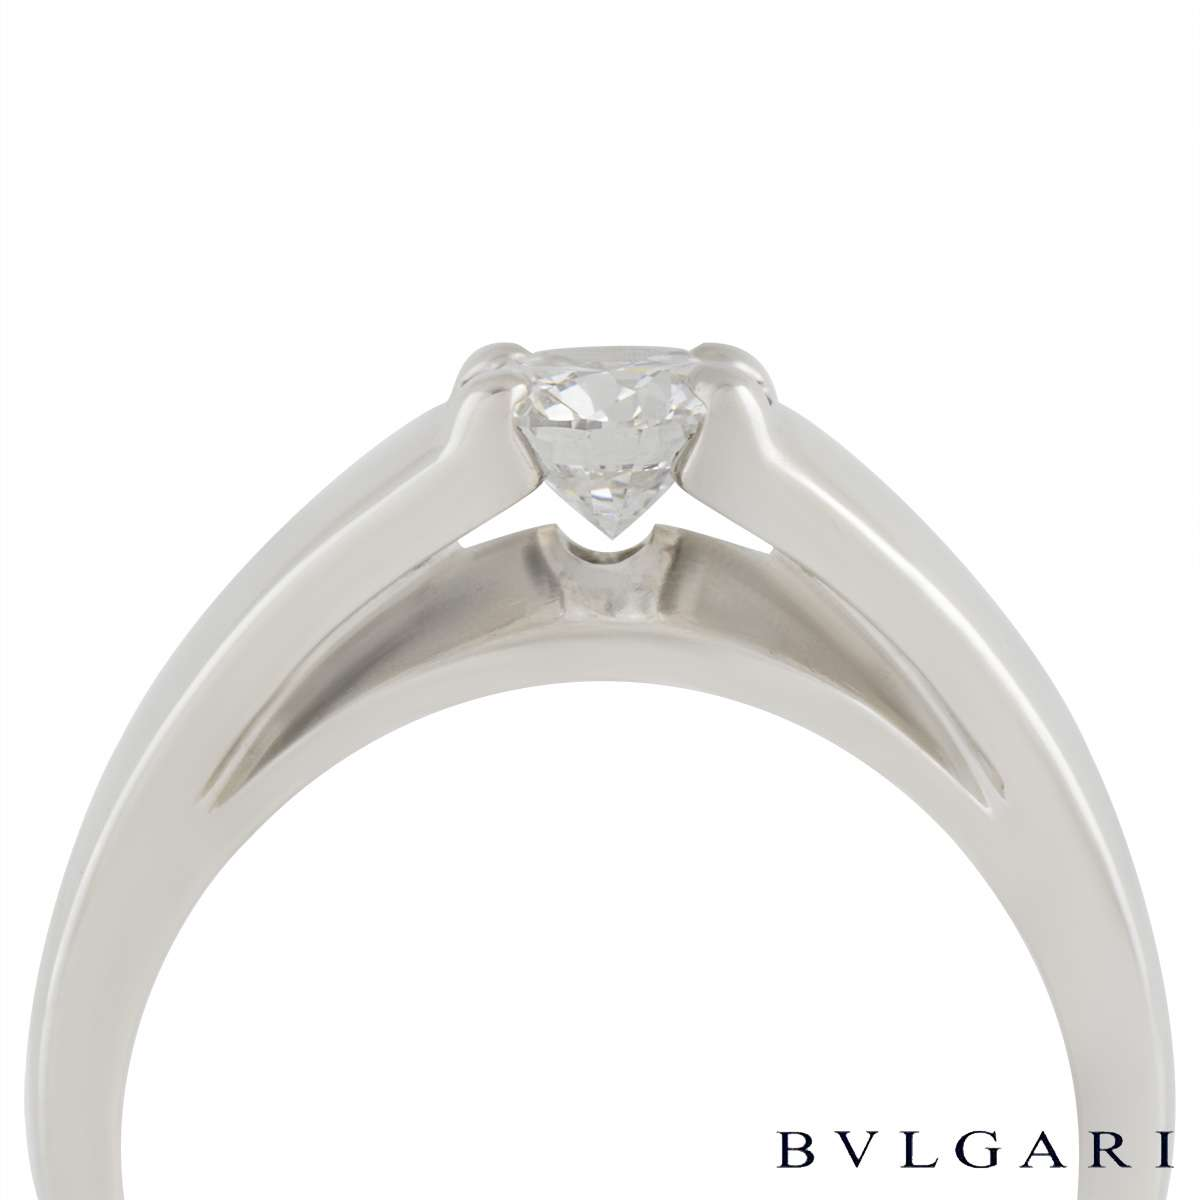 Bvlgari Round Brilliant Cut Diamond Marry Me Ring in Platinum 0.50ct E/VS1 AN852740